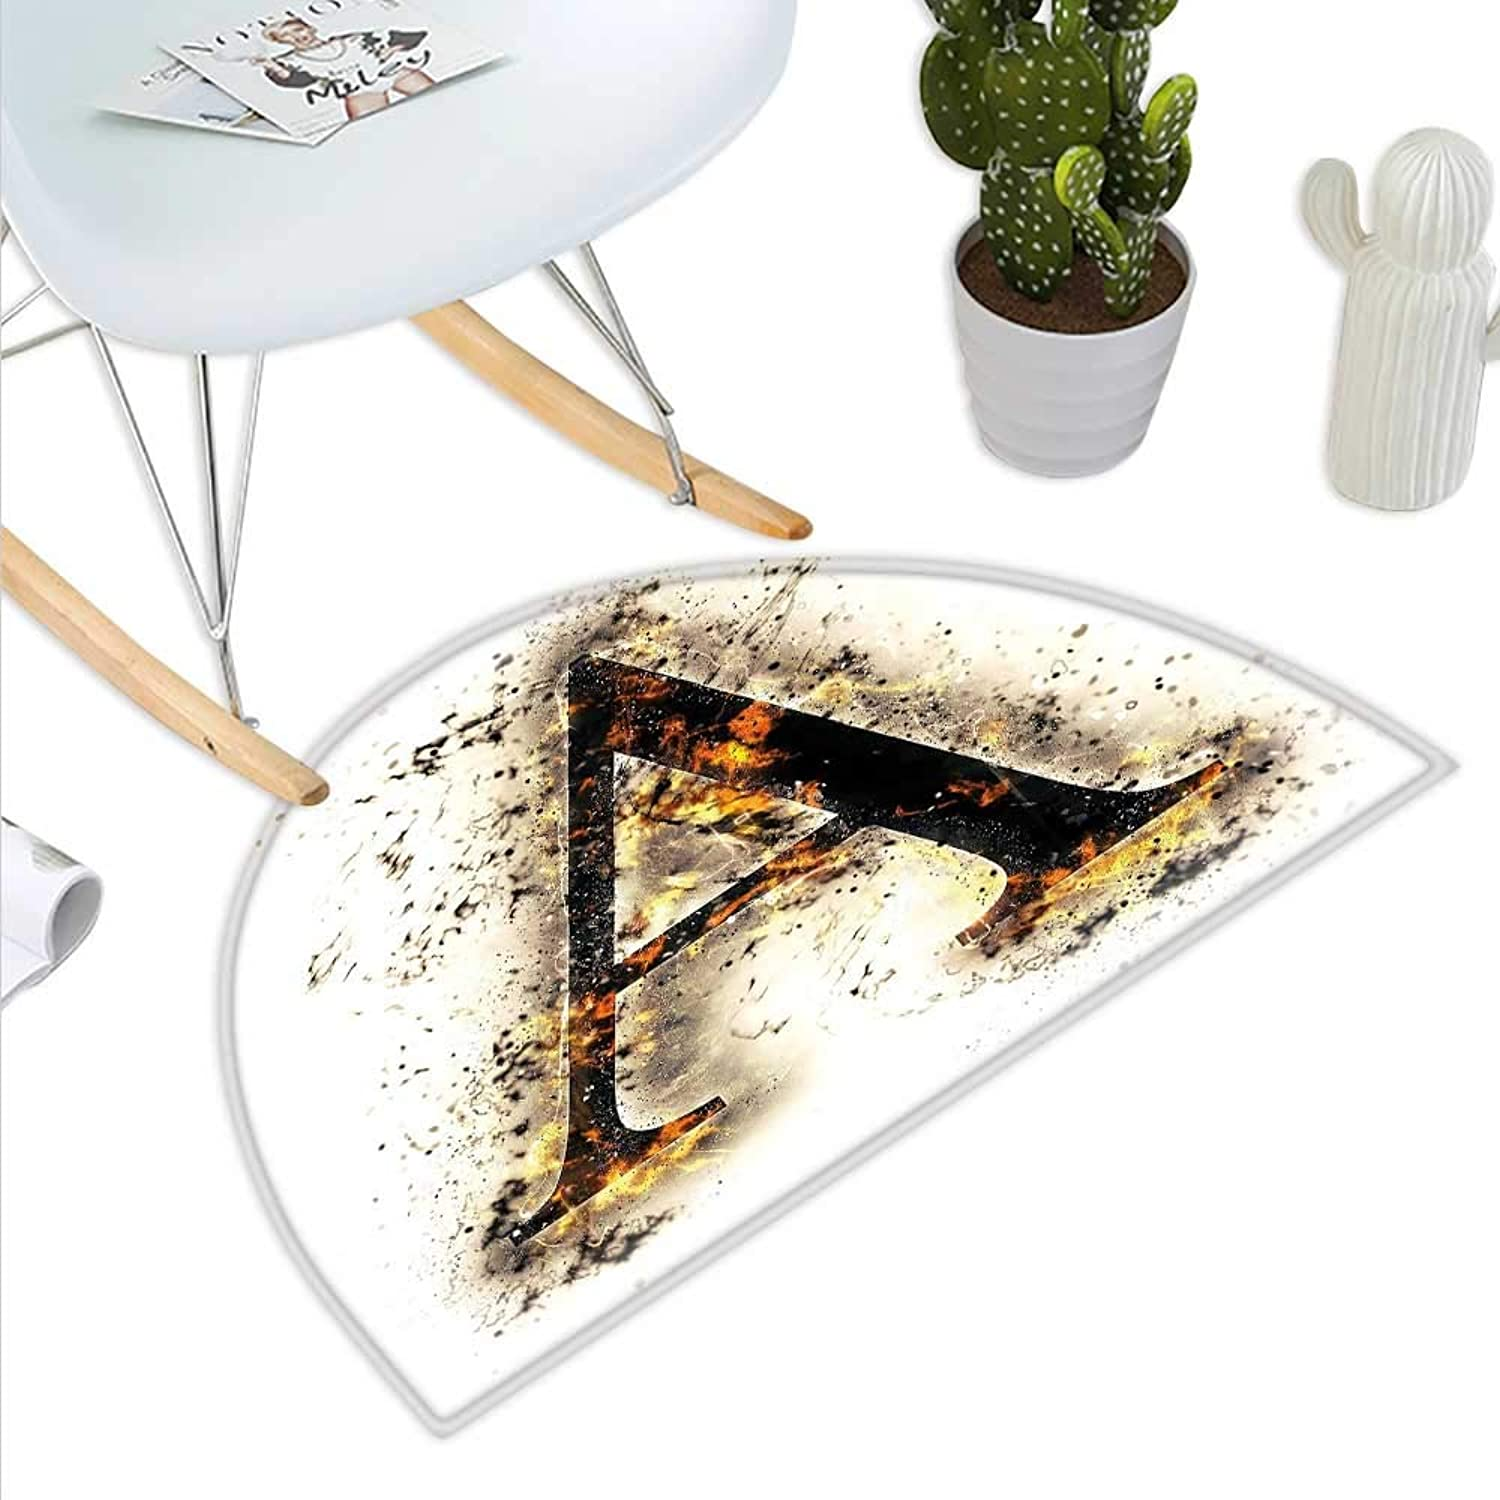 Letter A Semicircle Doormat Fiery Pattern First Letter of Alphabet Flame Texture Worn Stained Background Halfmoon doormats H 35.4  xD 53.1  Tan Black orange